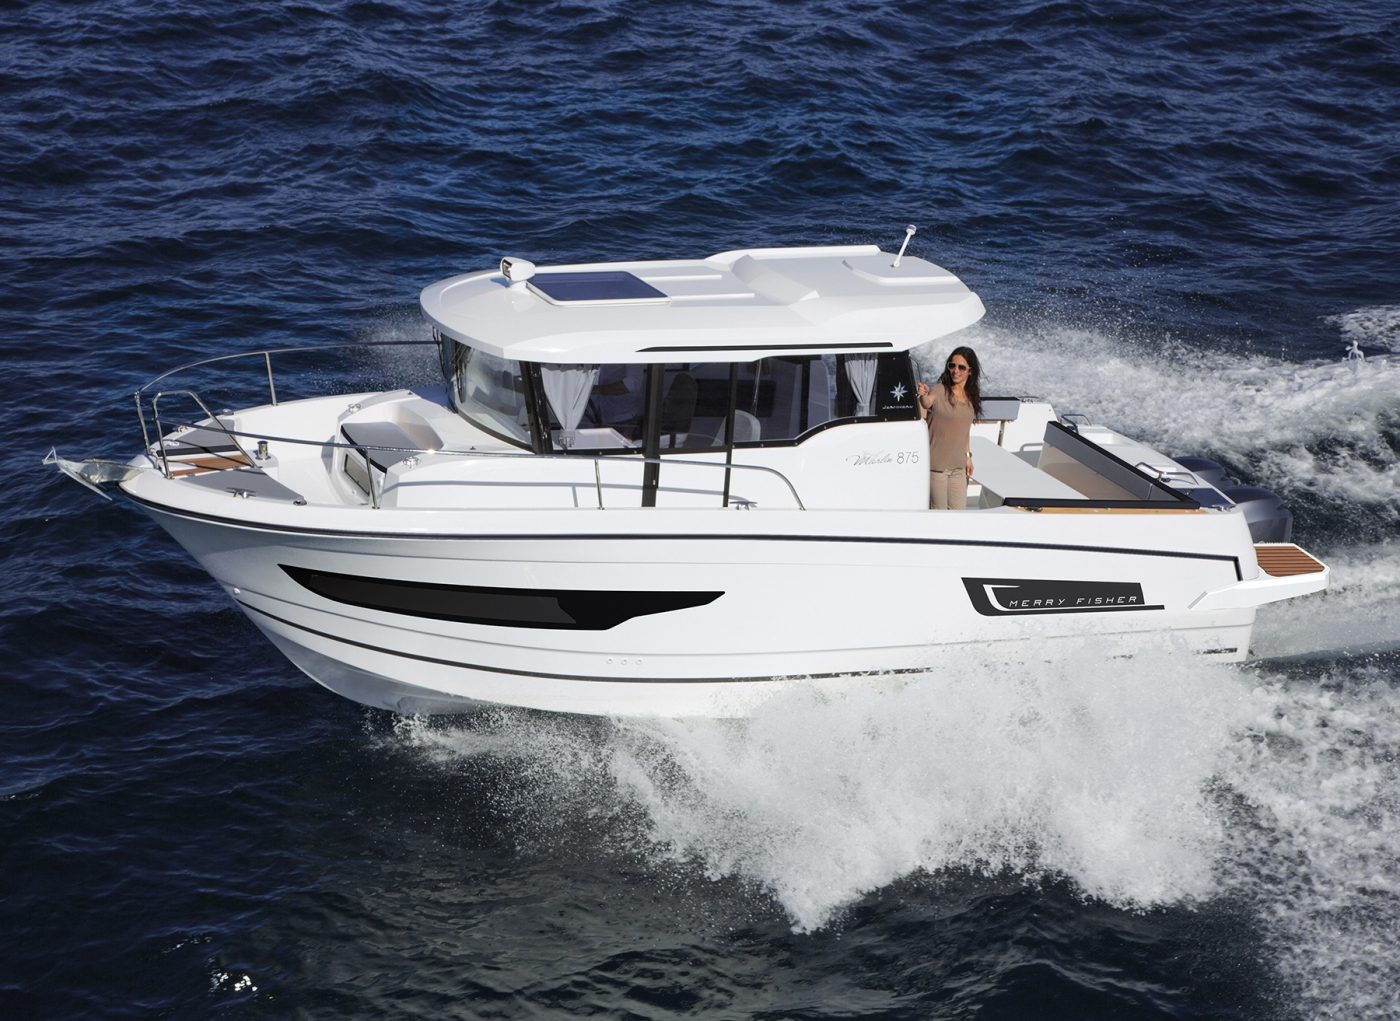 Merry Fisher Marlin 875 Motor Boats - Sea Ventures